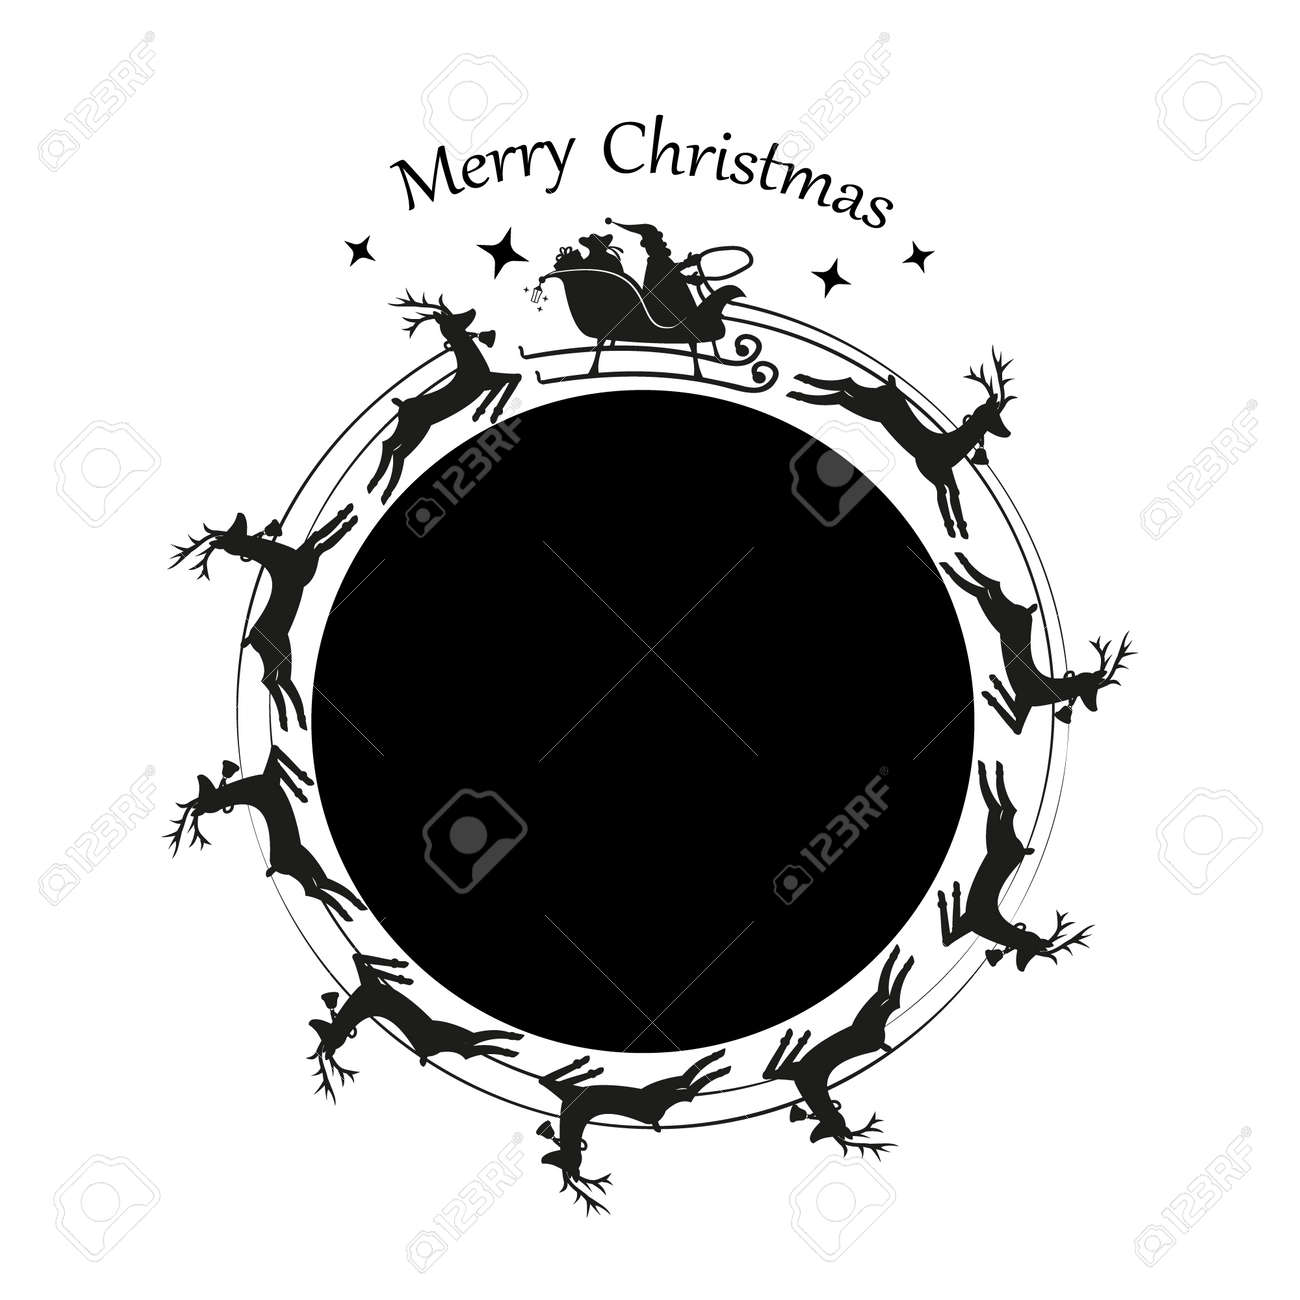 Santa Claus in a sleigh and with reindeer. Vector - 158543136